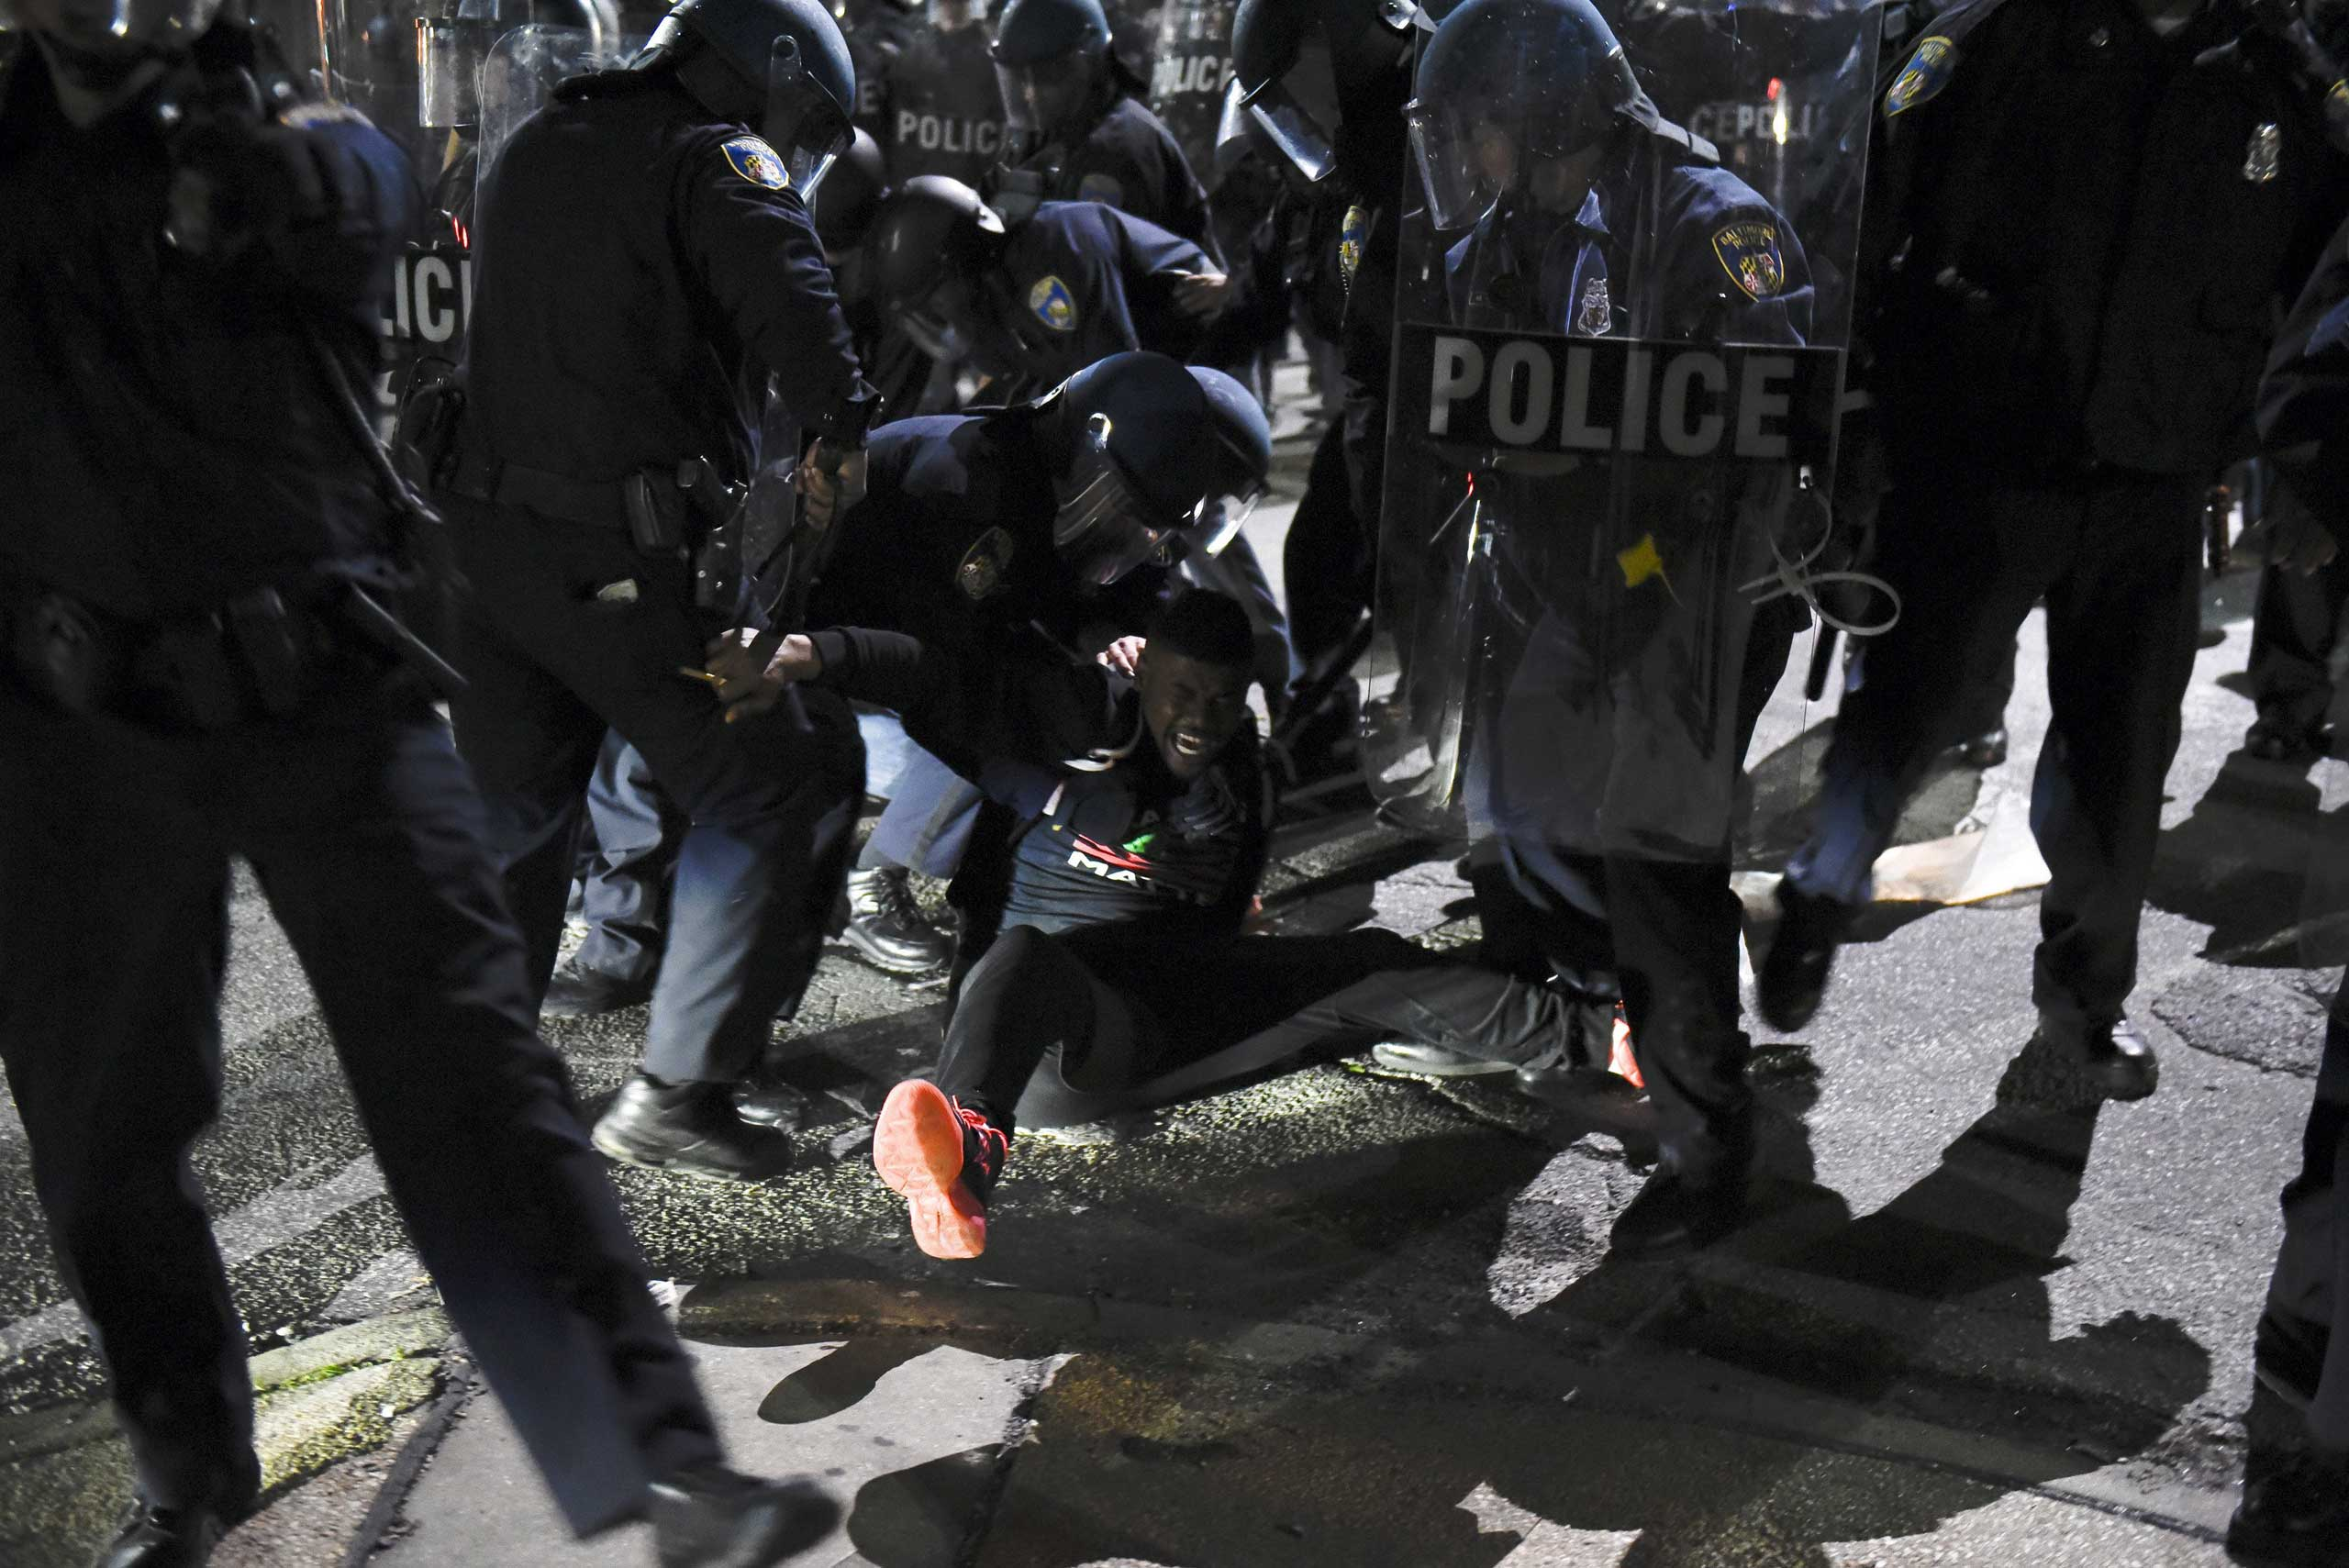 Law enforcement officers detain a demonstrator on Gilmore Avenue near Baltimore Police Department Western District during a protest against the death of Freddie Gray in police custody, in Baltimore on April 25, 2015.